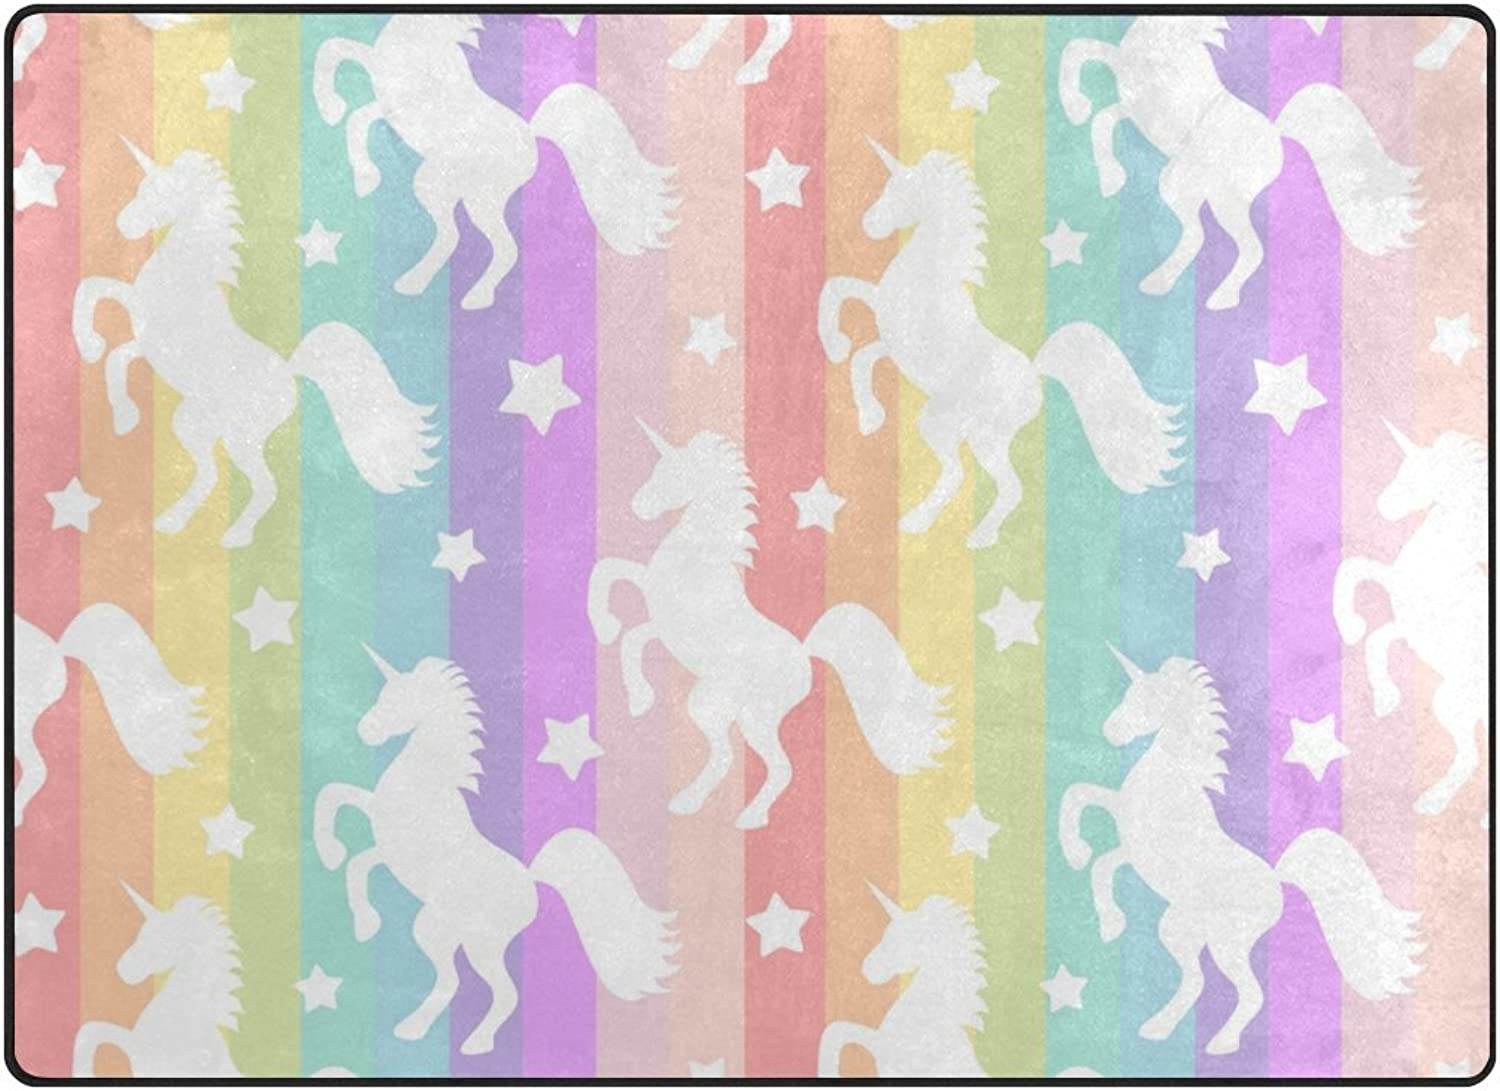 SUABO 80 x 58 inches Area Rug Non-Slip Floor Mat Cute White Unicorn Printed Doormats for Living Room Bedroom